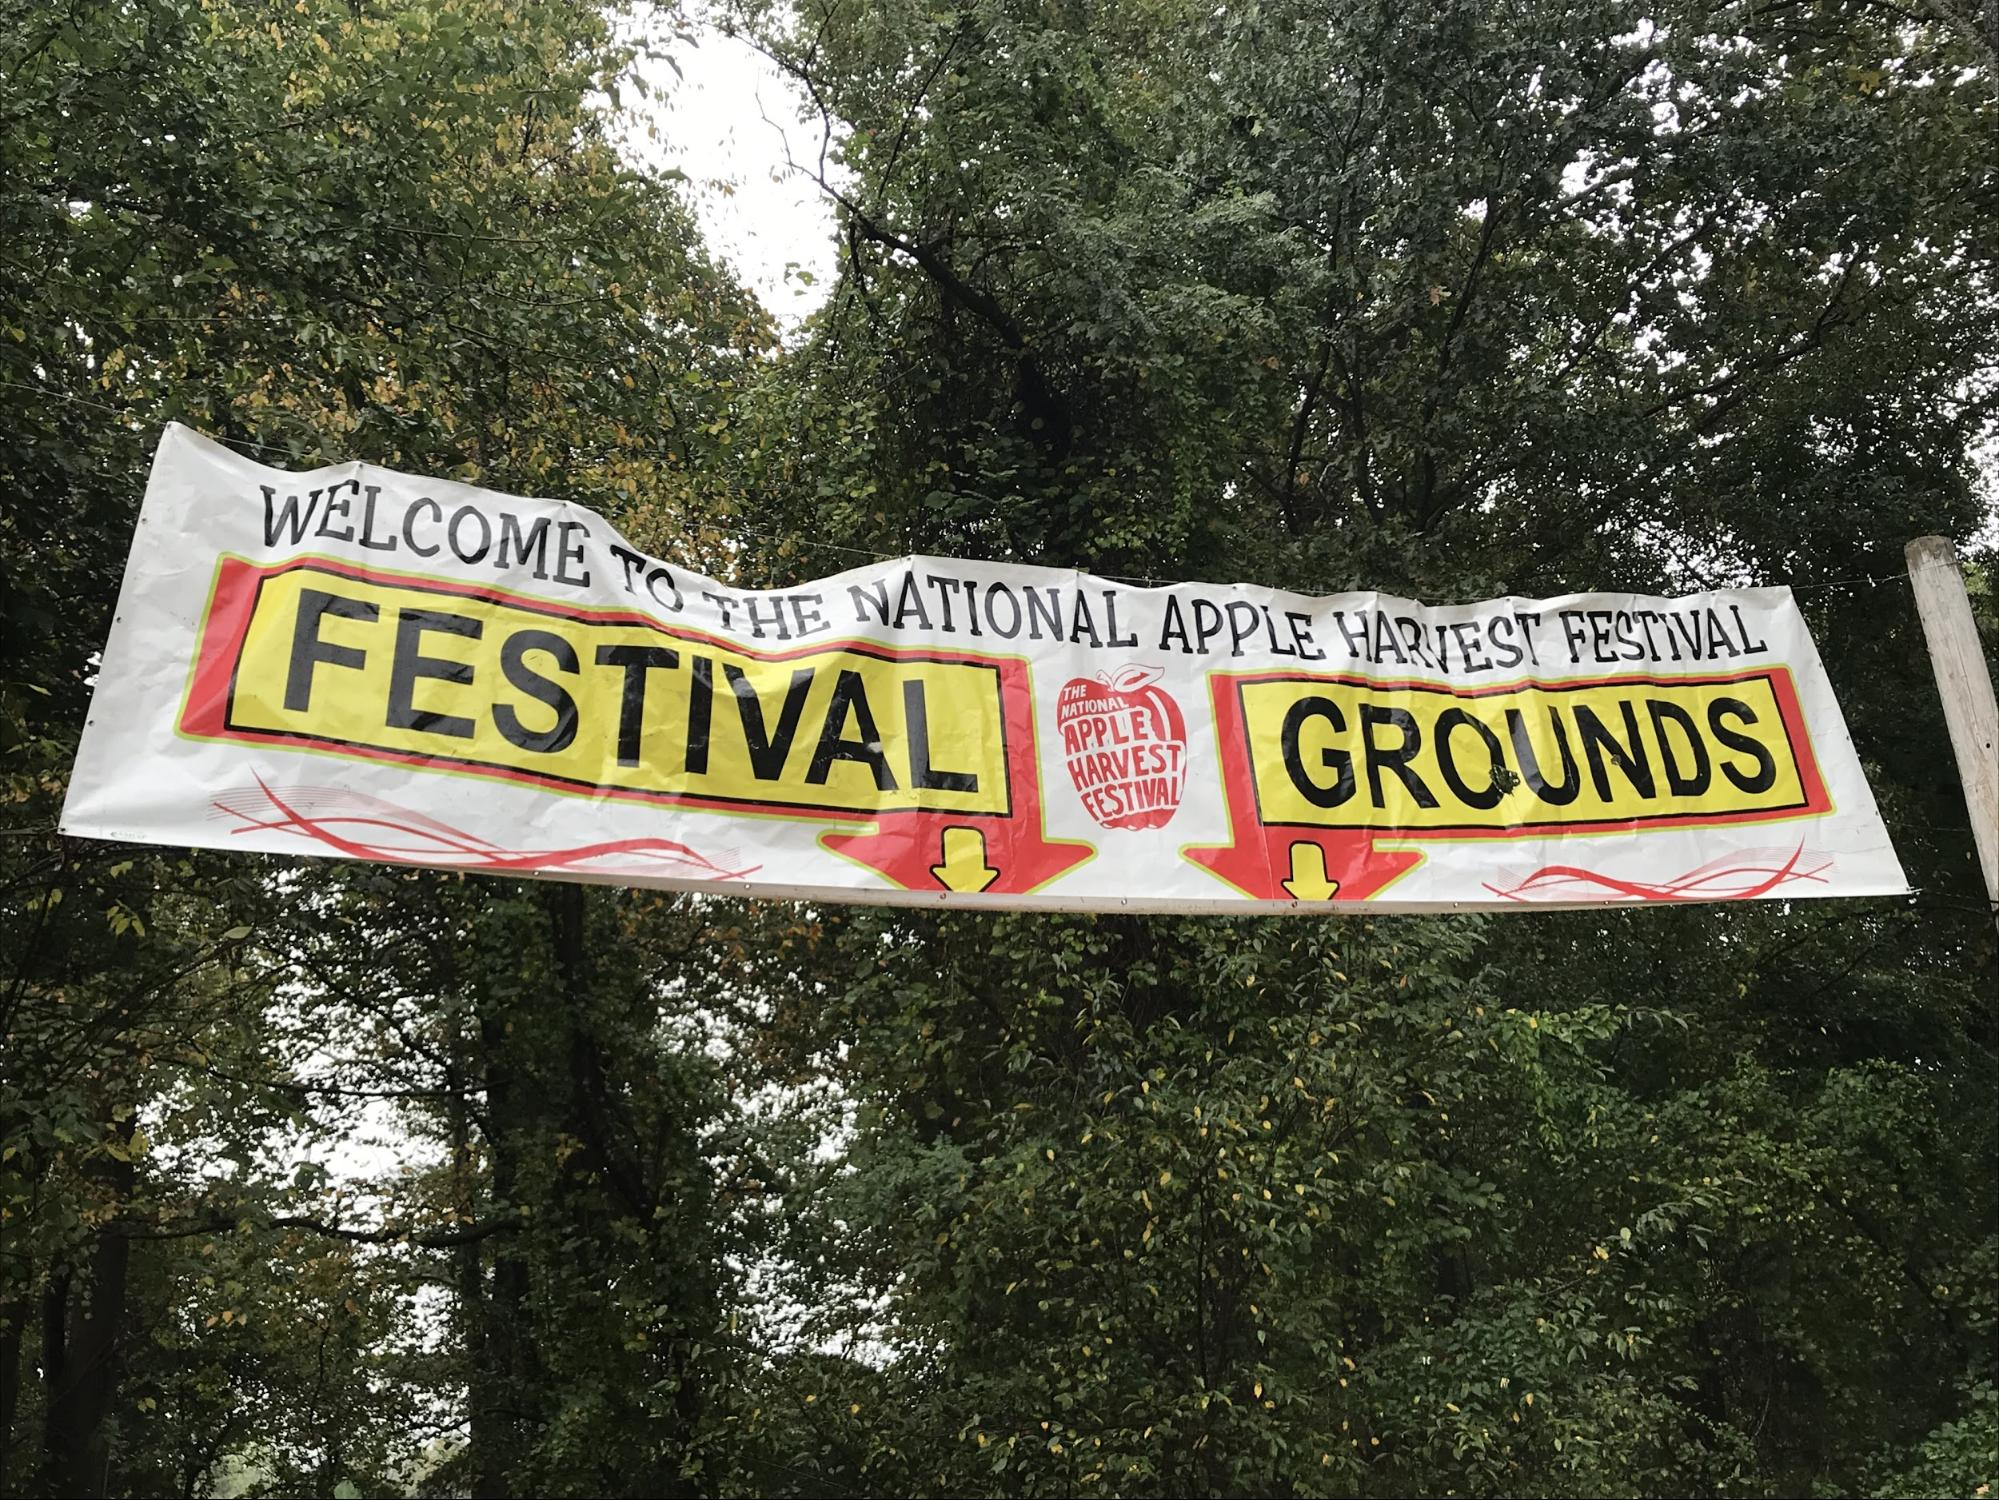 Adams County welcomes patrons to its 55th Annual National Apple Harvest Festival (Photo Emma Canfora/The Gettysburgian)